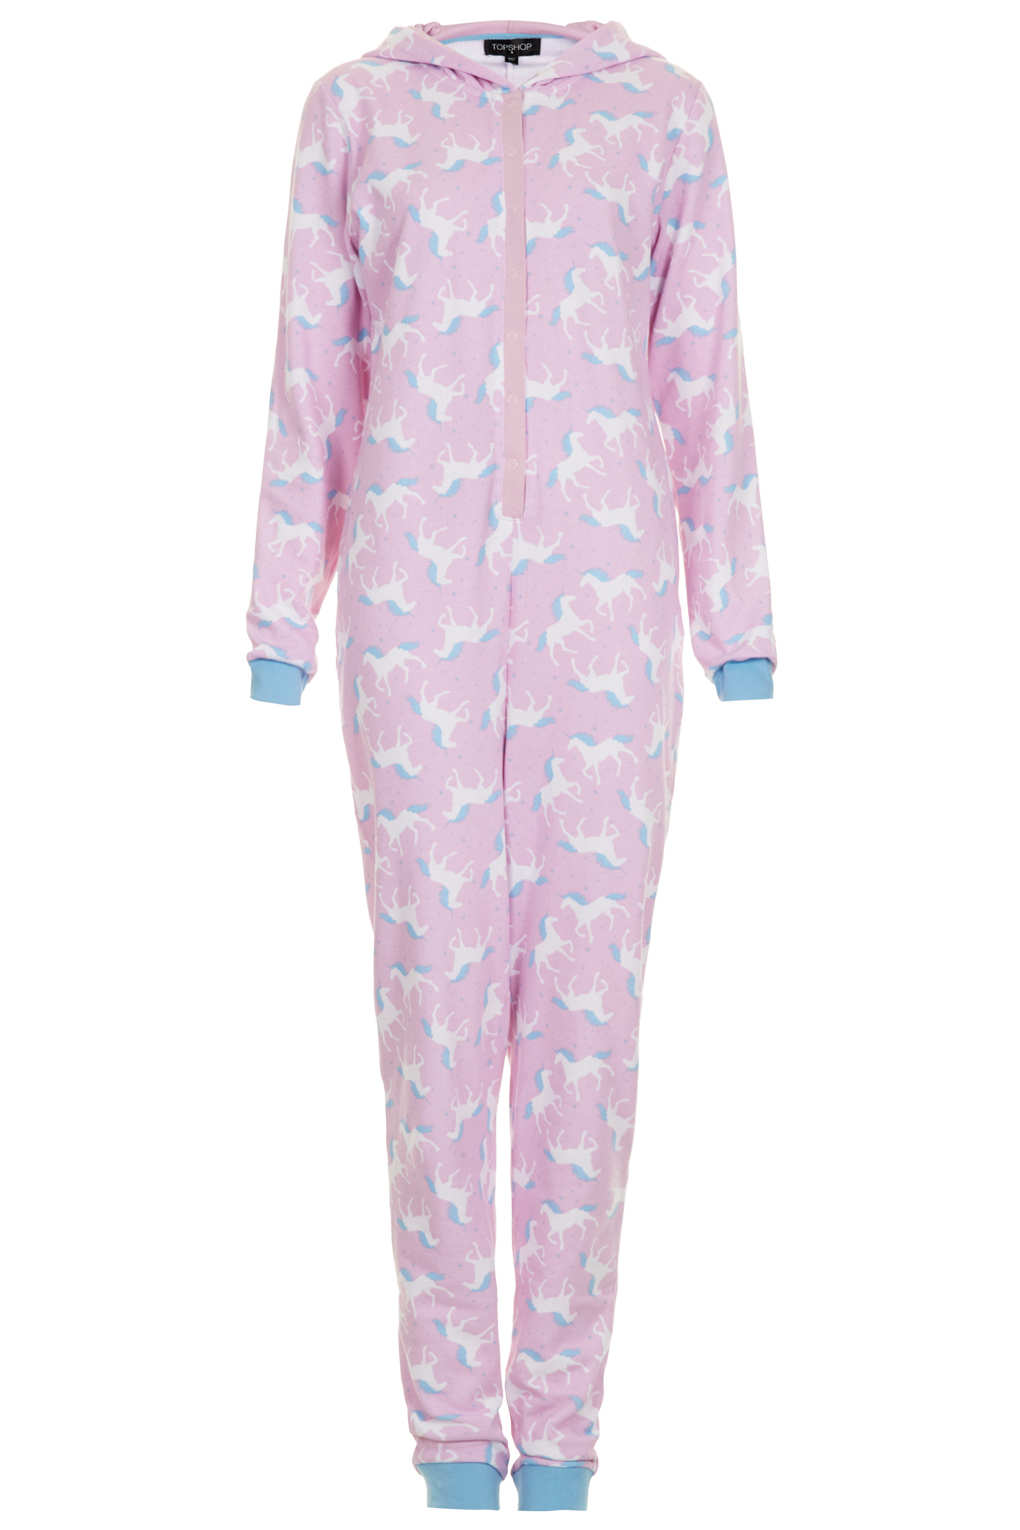 teens fashion 2013 blog unicorn onesies